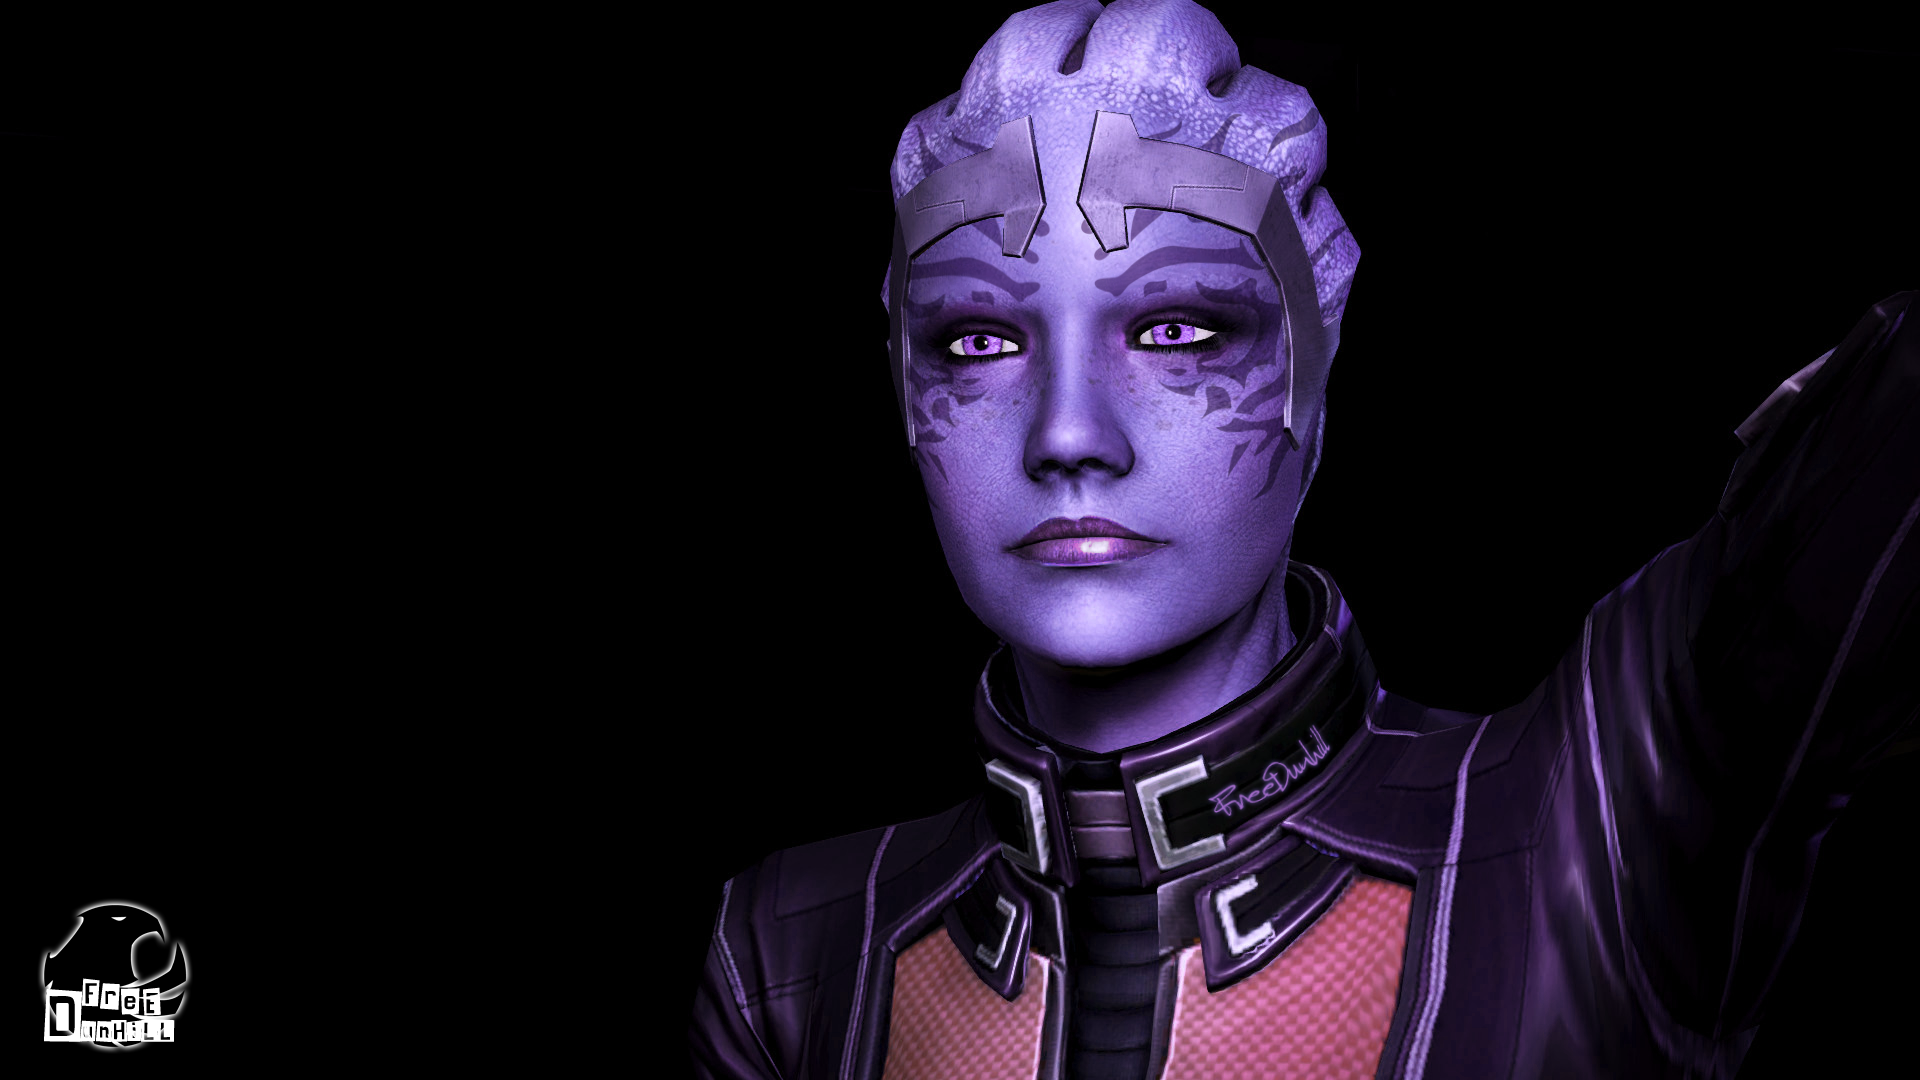 What If Liara Had More Facial Markings By Free Dunhill Masseffect